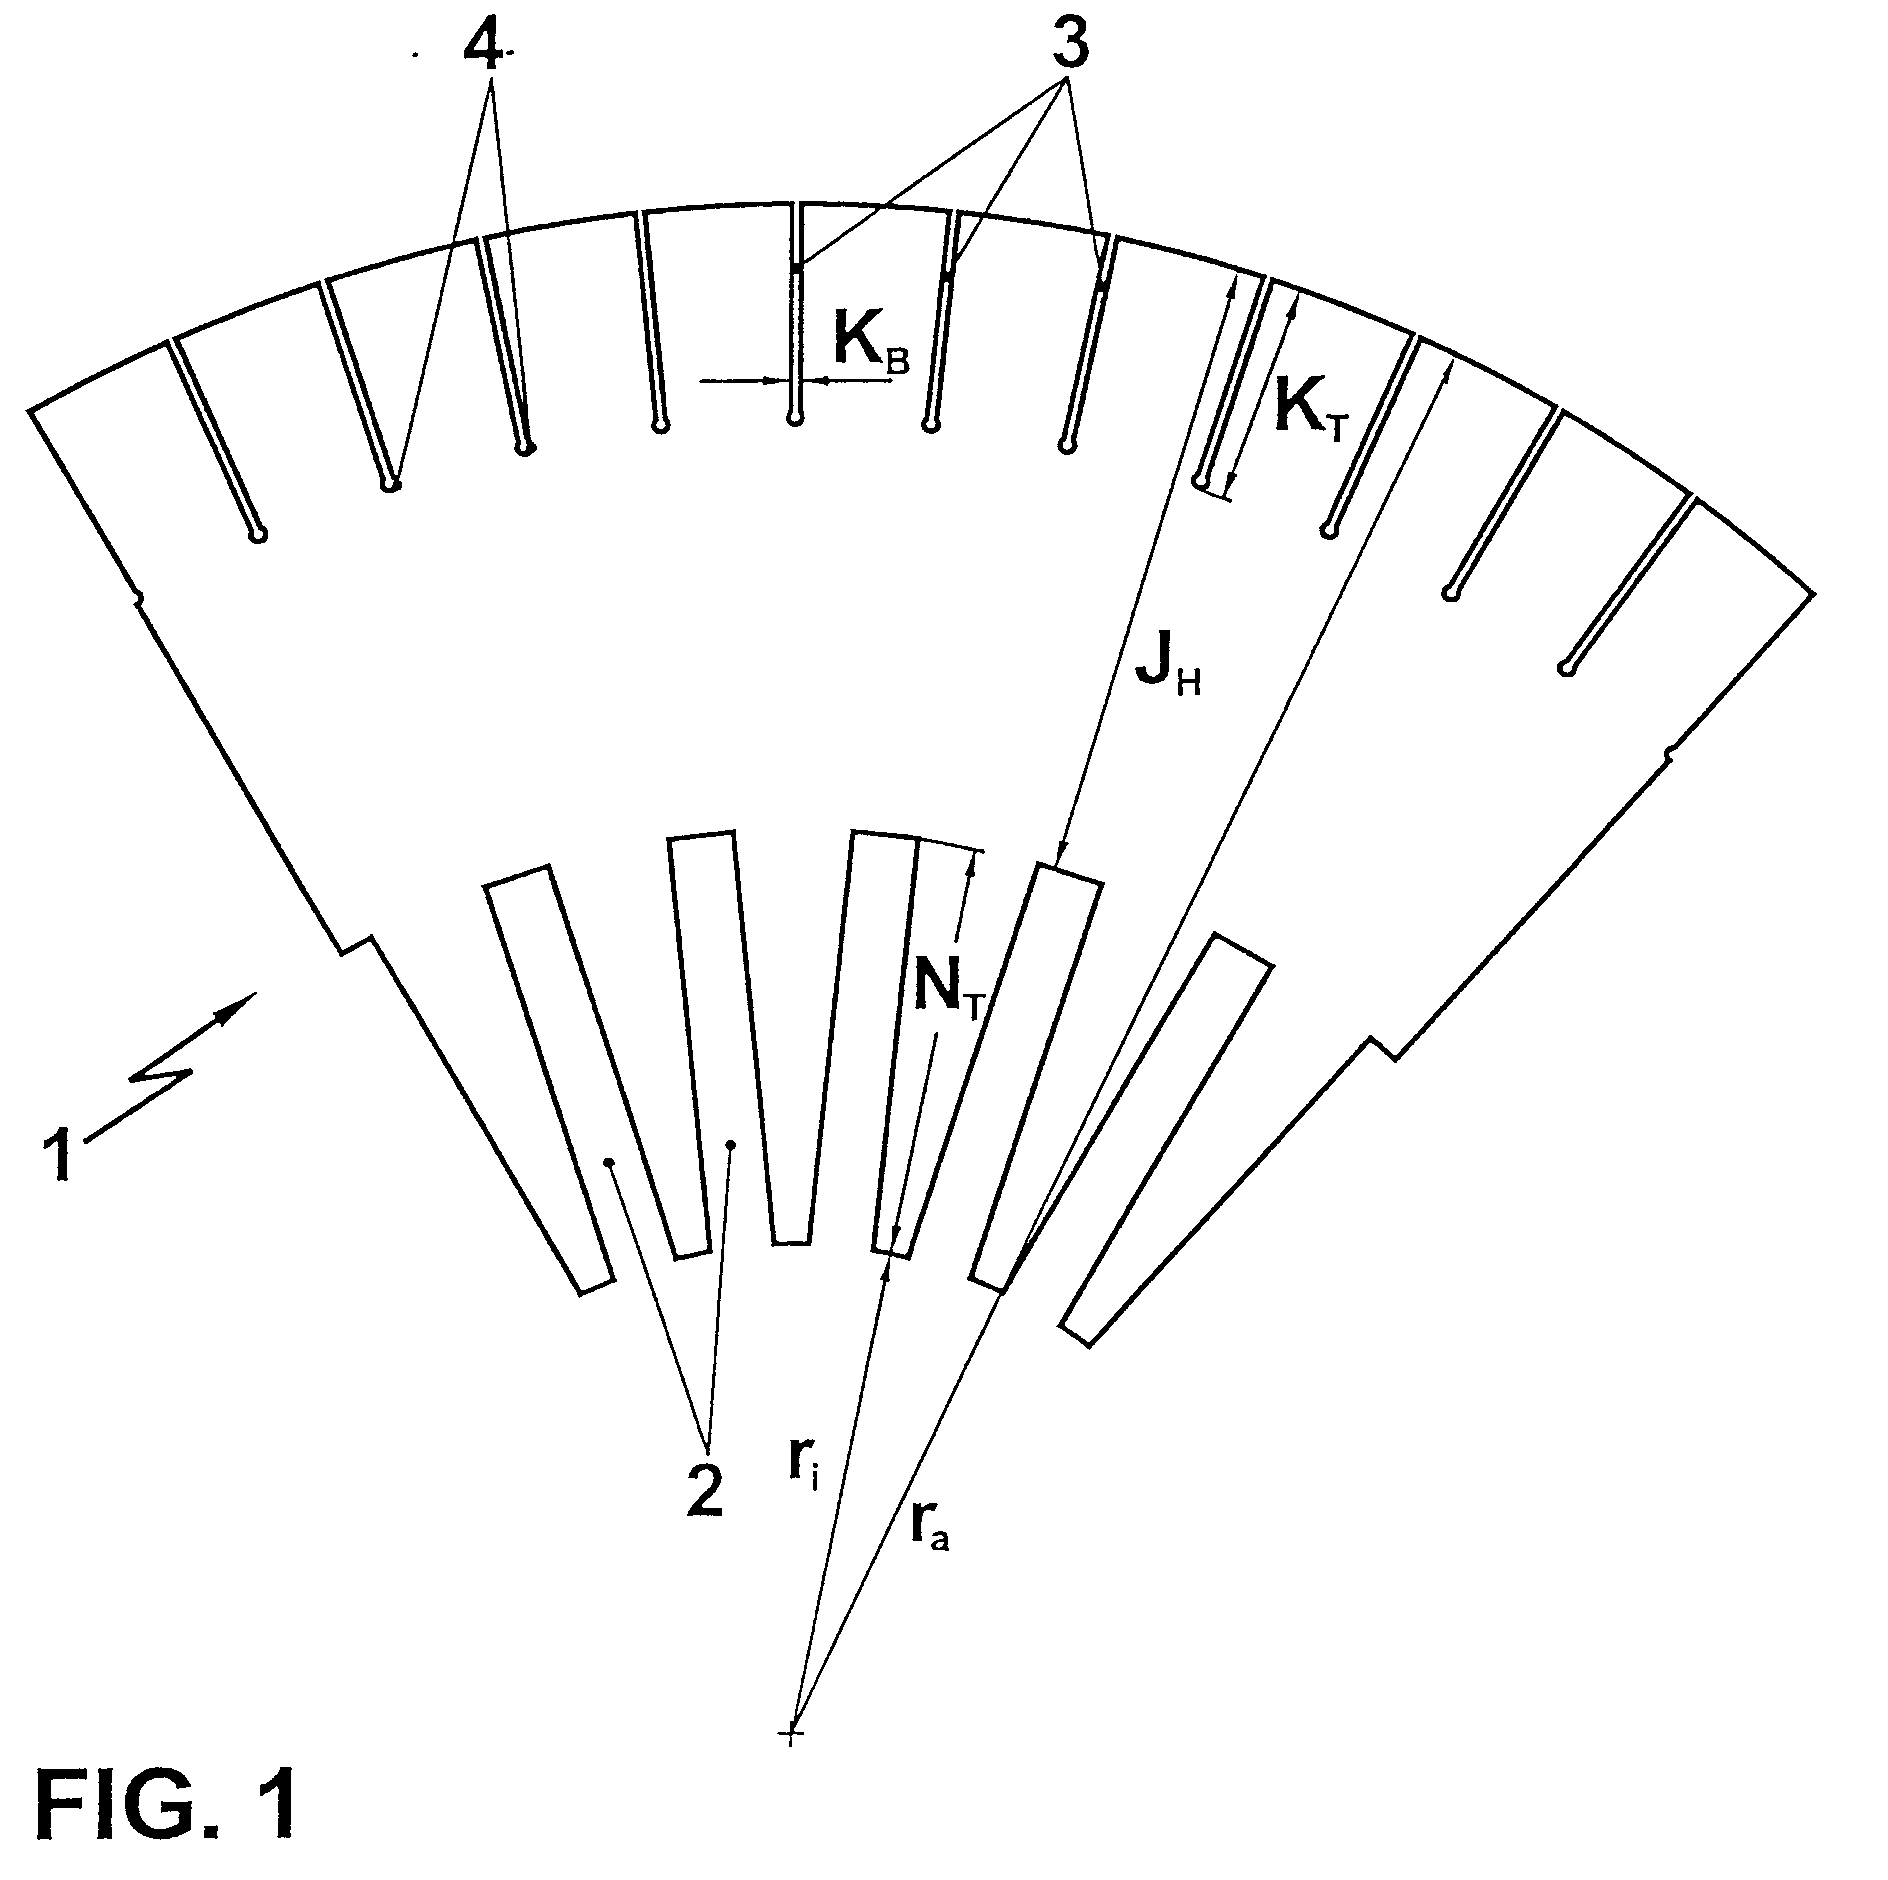 Electric Turbocharger Patents: Stator Lamination For An Electric